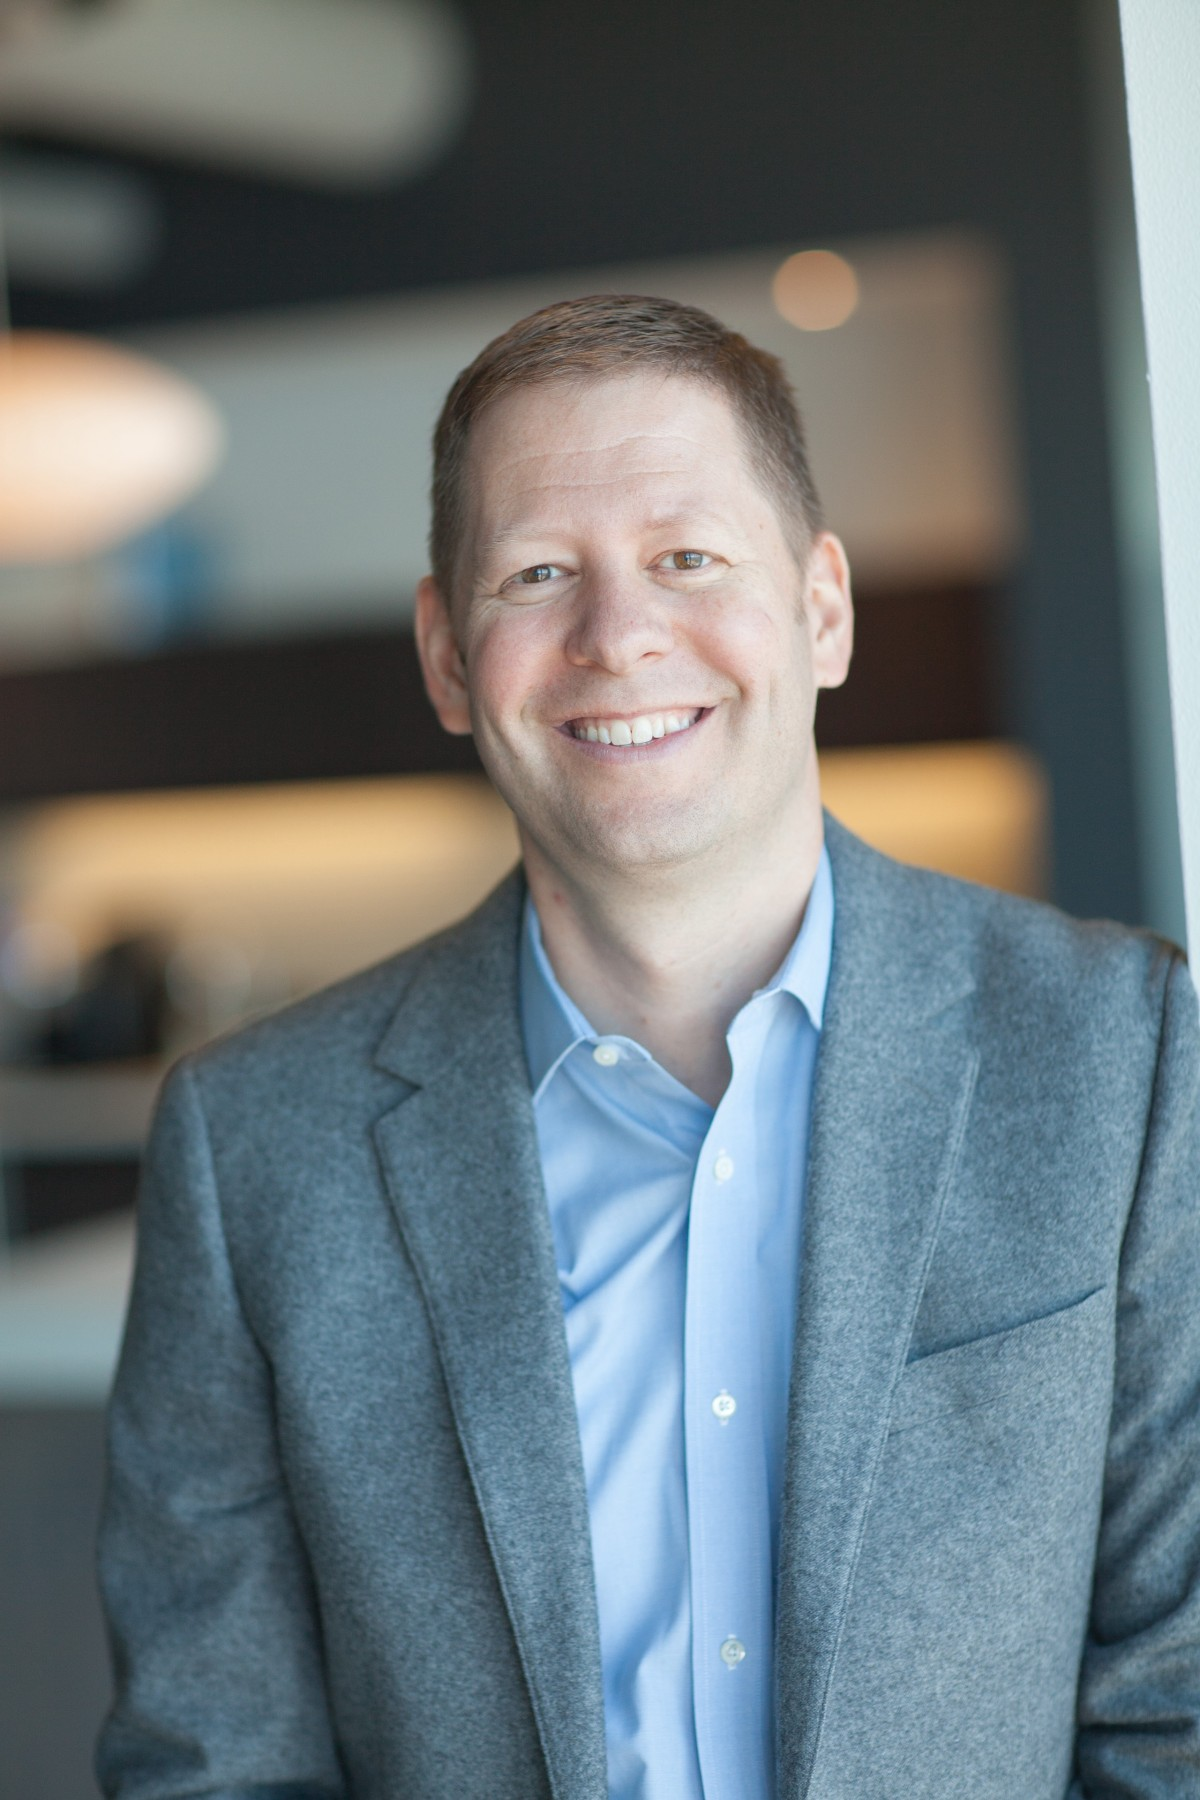 """Dan Spaulding of Zillow Group: """"To create a fantastic work culture make sure to treat employees as whole people"""""""